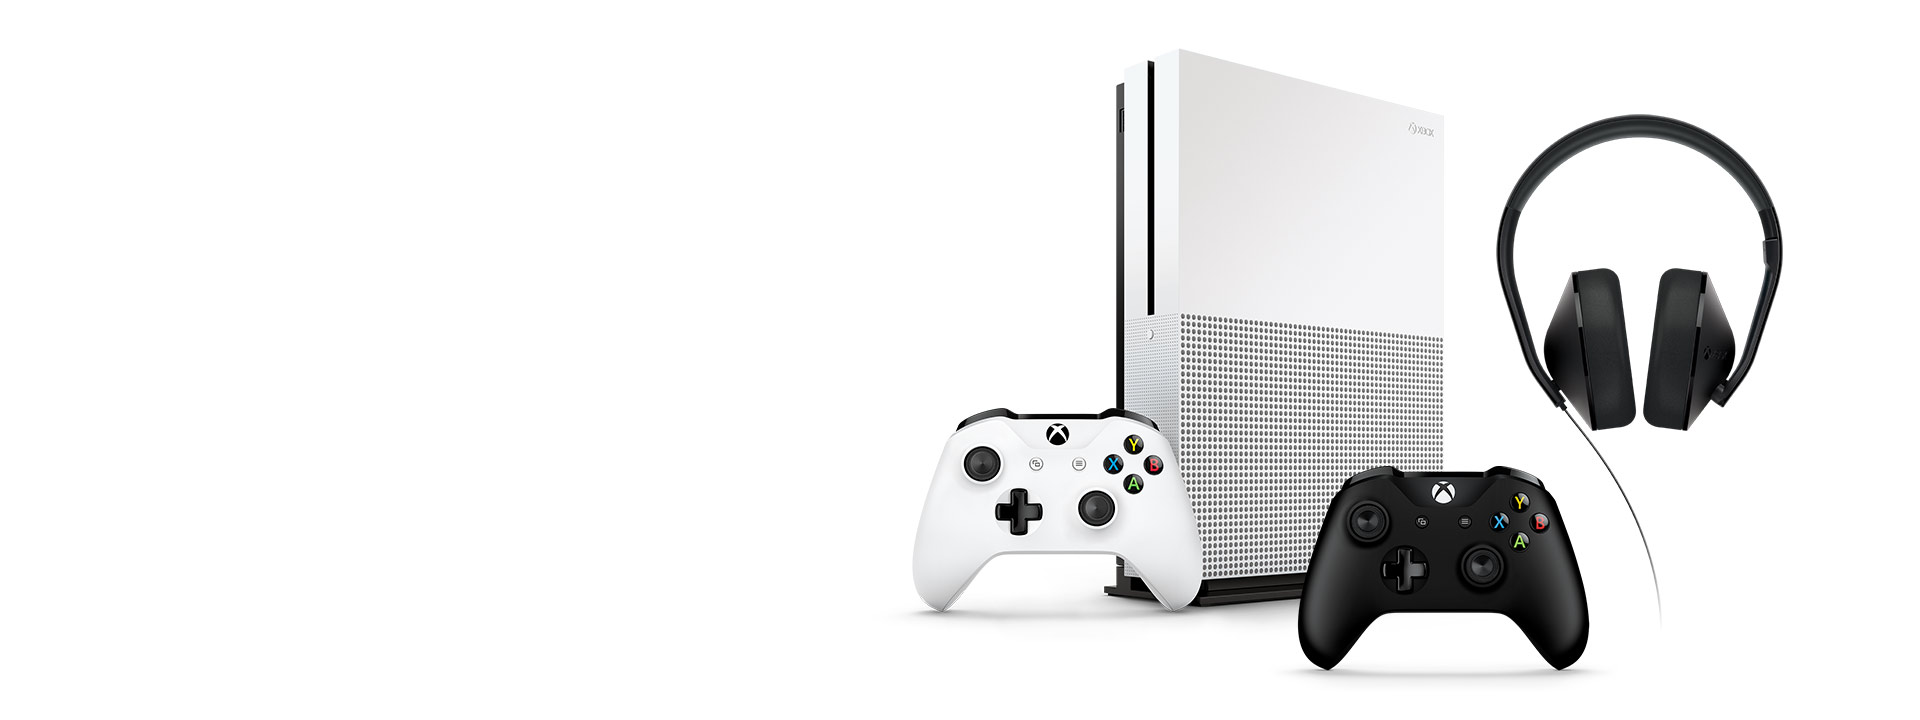 xbox one s products